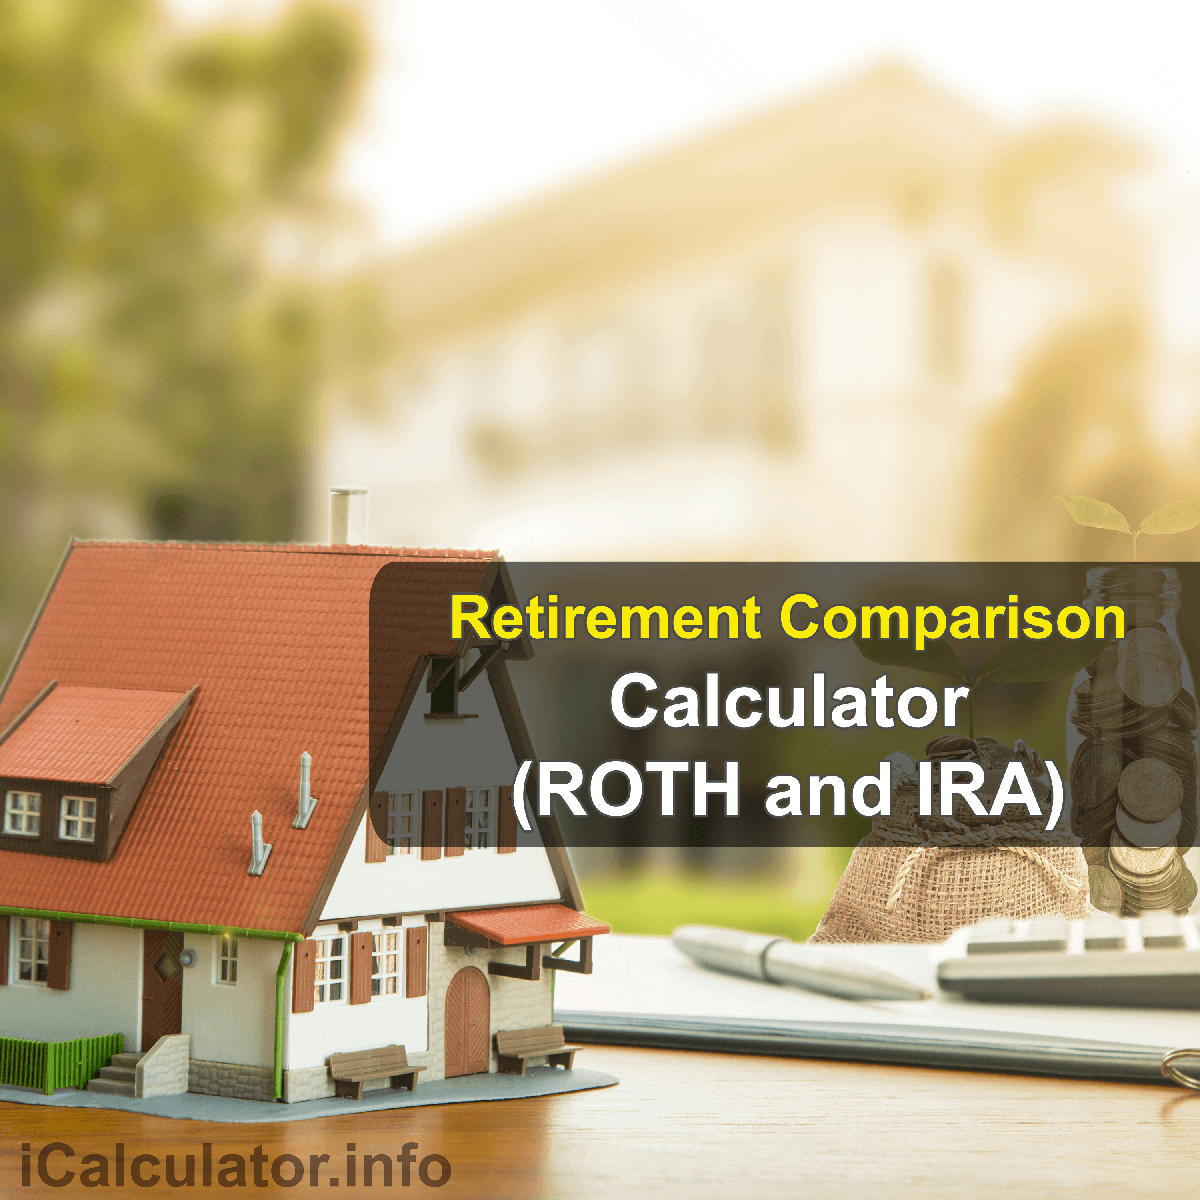 ROTH and IRA Calculator. This image provides details of how to calculate the compound annual growth rate using a good calculator, a pencil and paper. By using the ROTH IRA formula, the IRA Comparison Calculator provides a comparison calculation of the retirement fund provided by ROTH IRA and Traditional IRA retirement saving plans